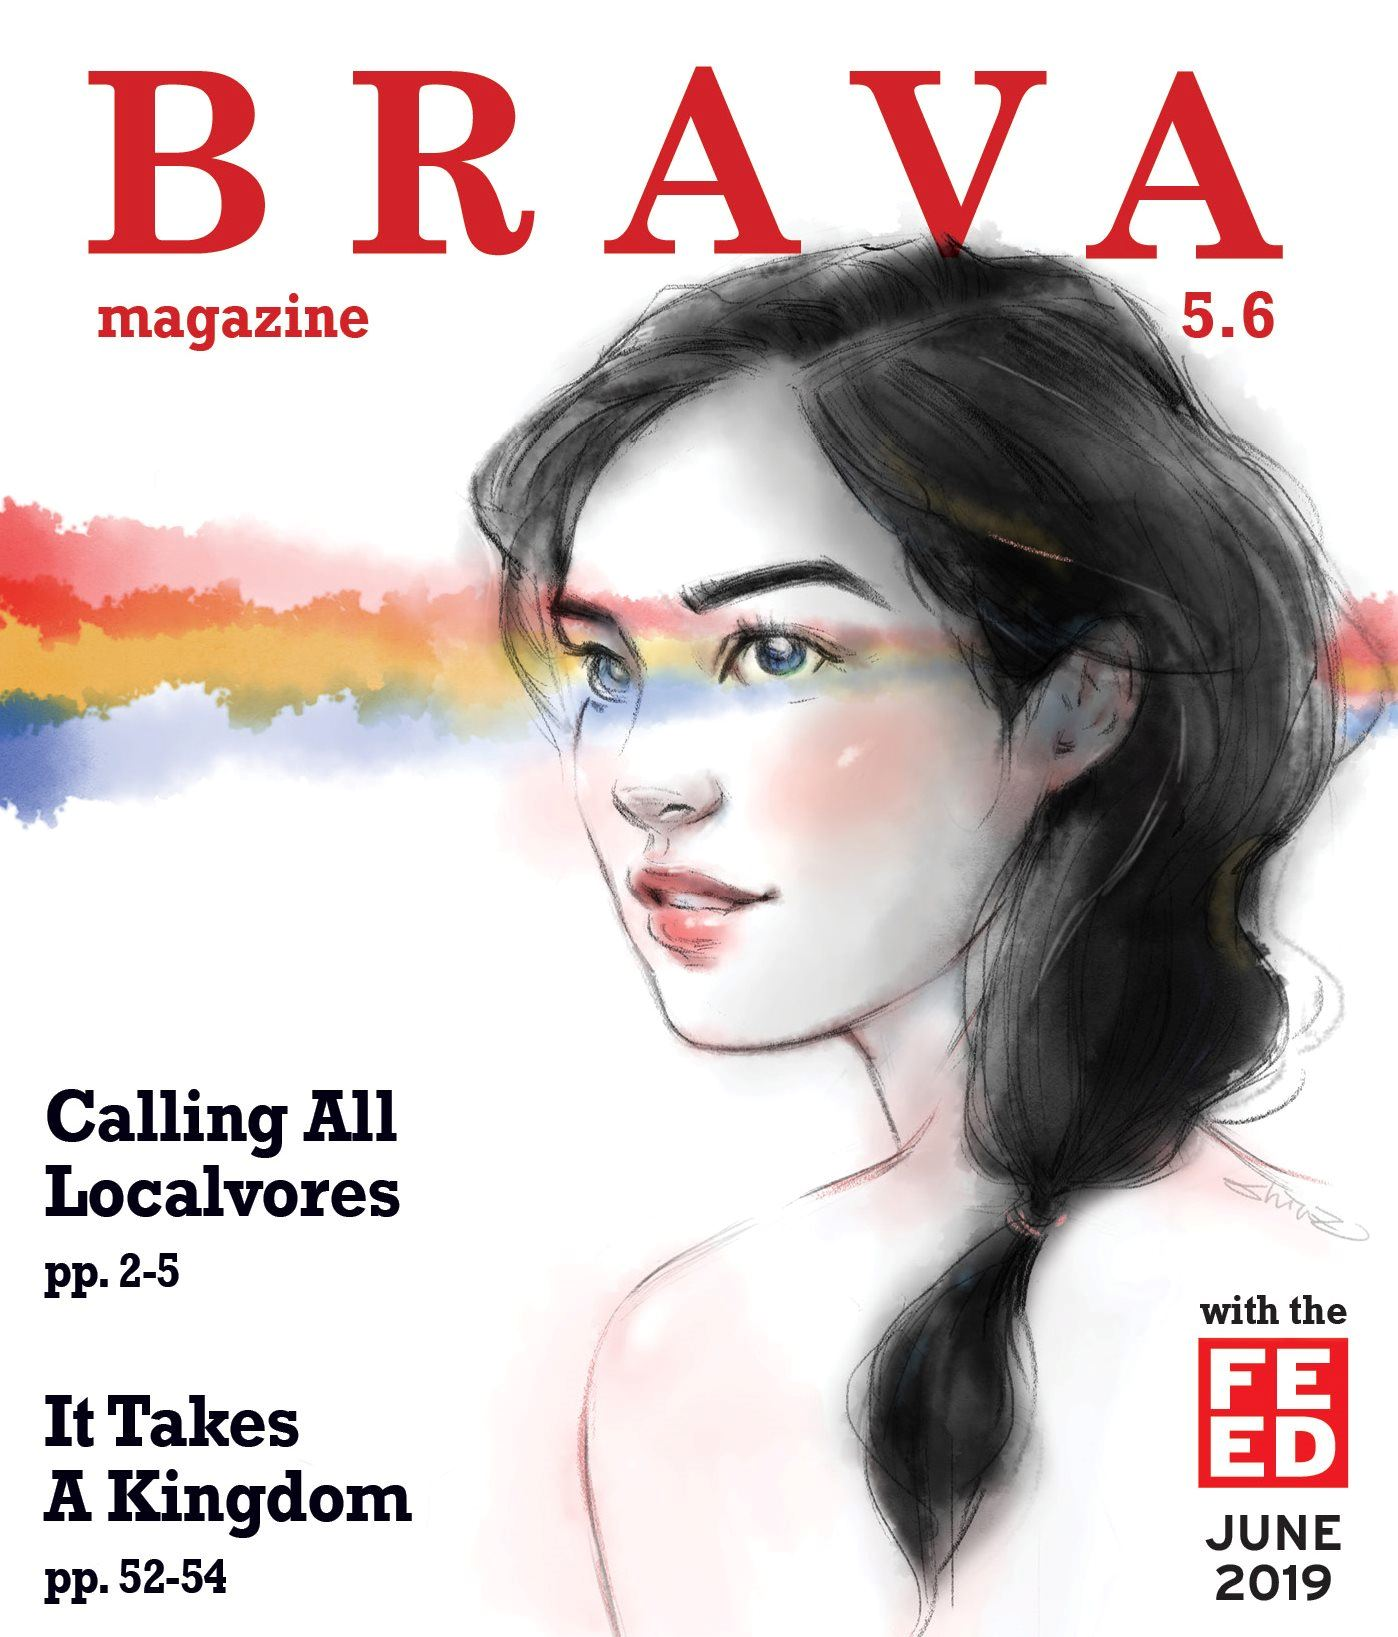 Bravo June 2019 Cover- ink drawing of a woman with a rainbow